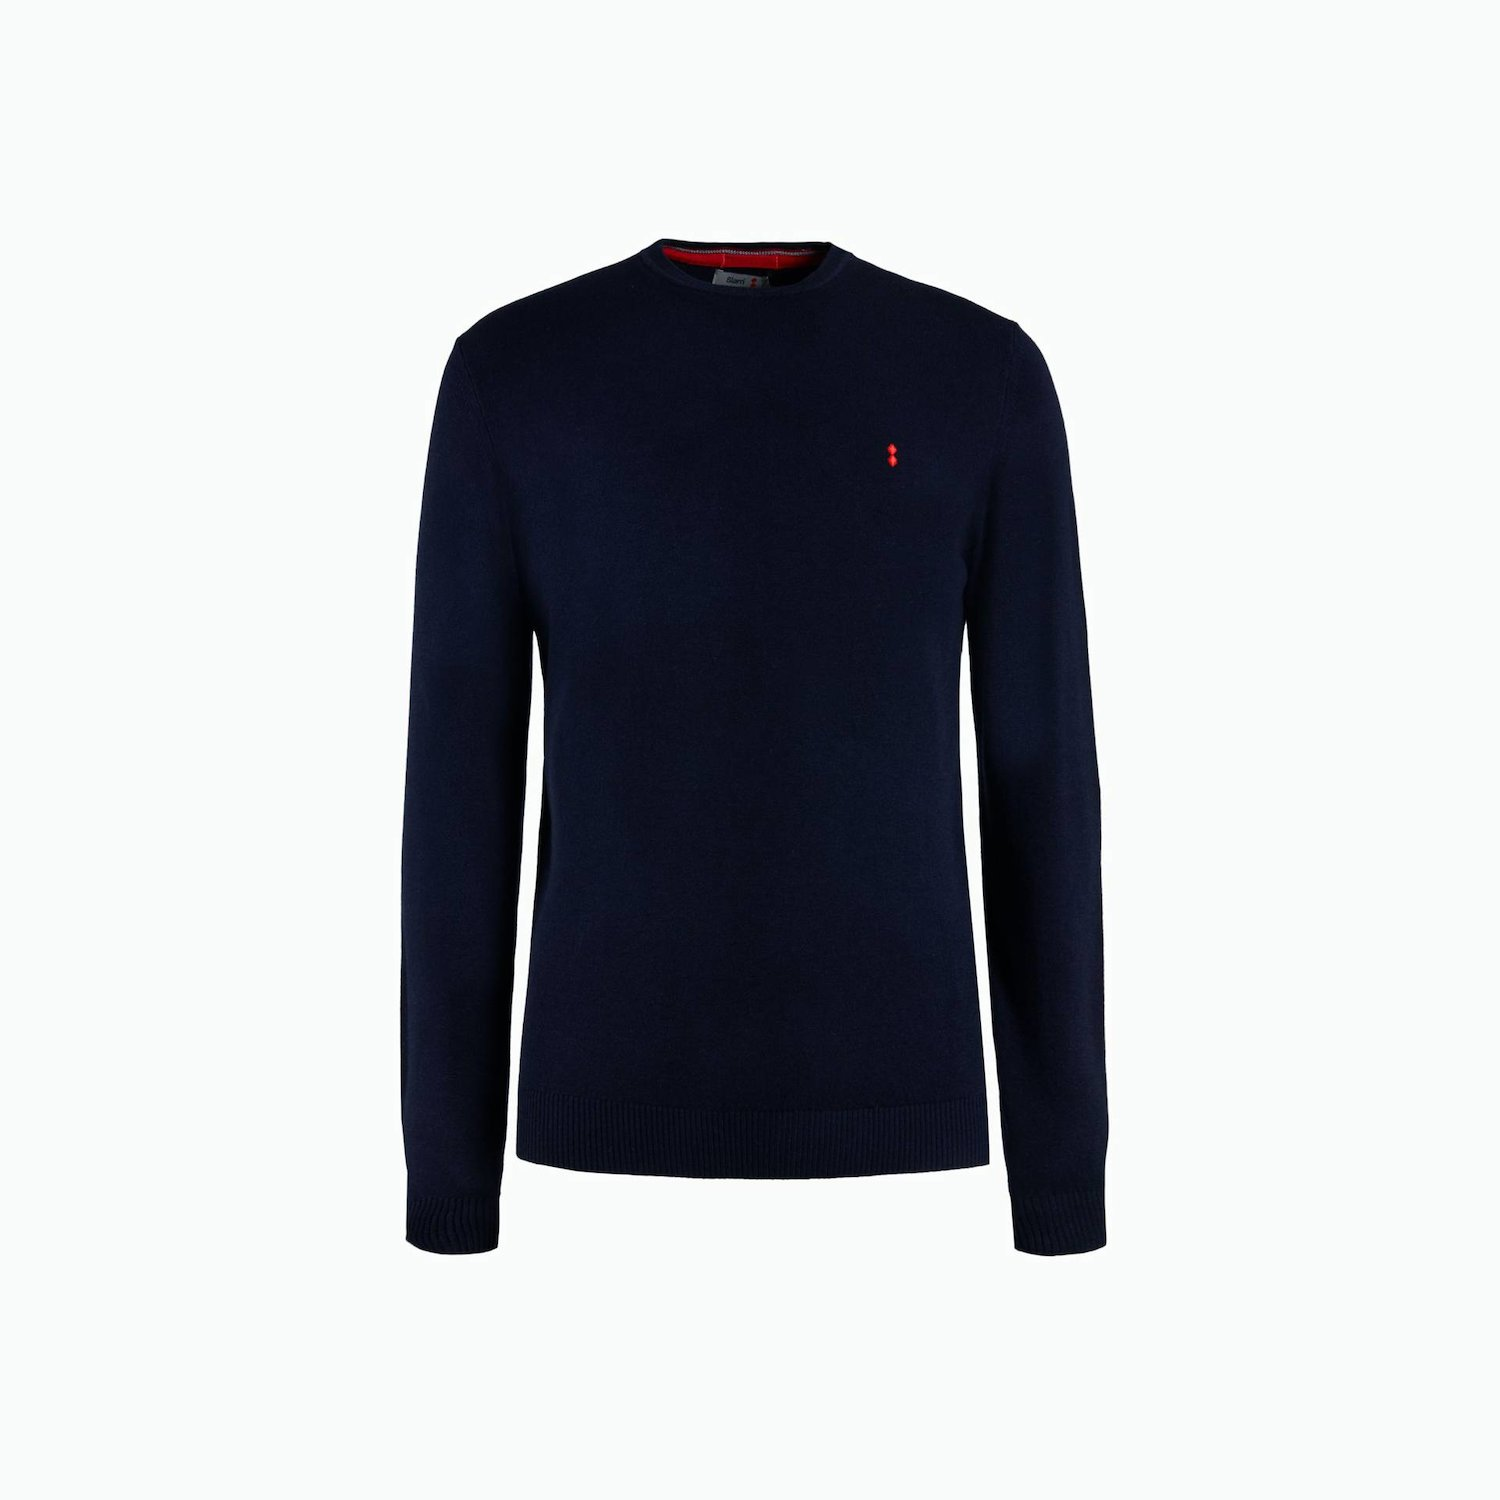 B80 sweater - Navy